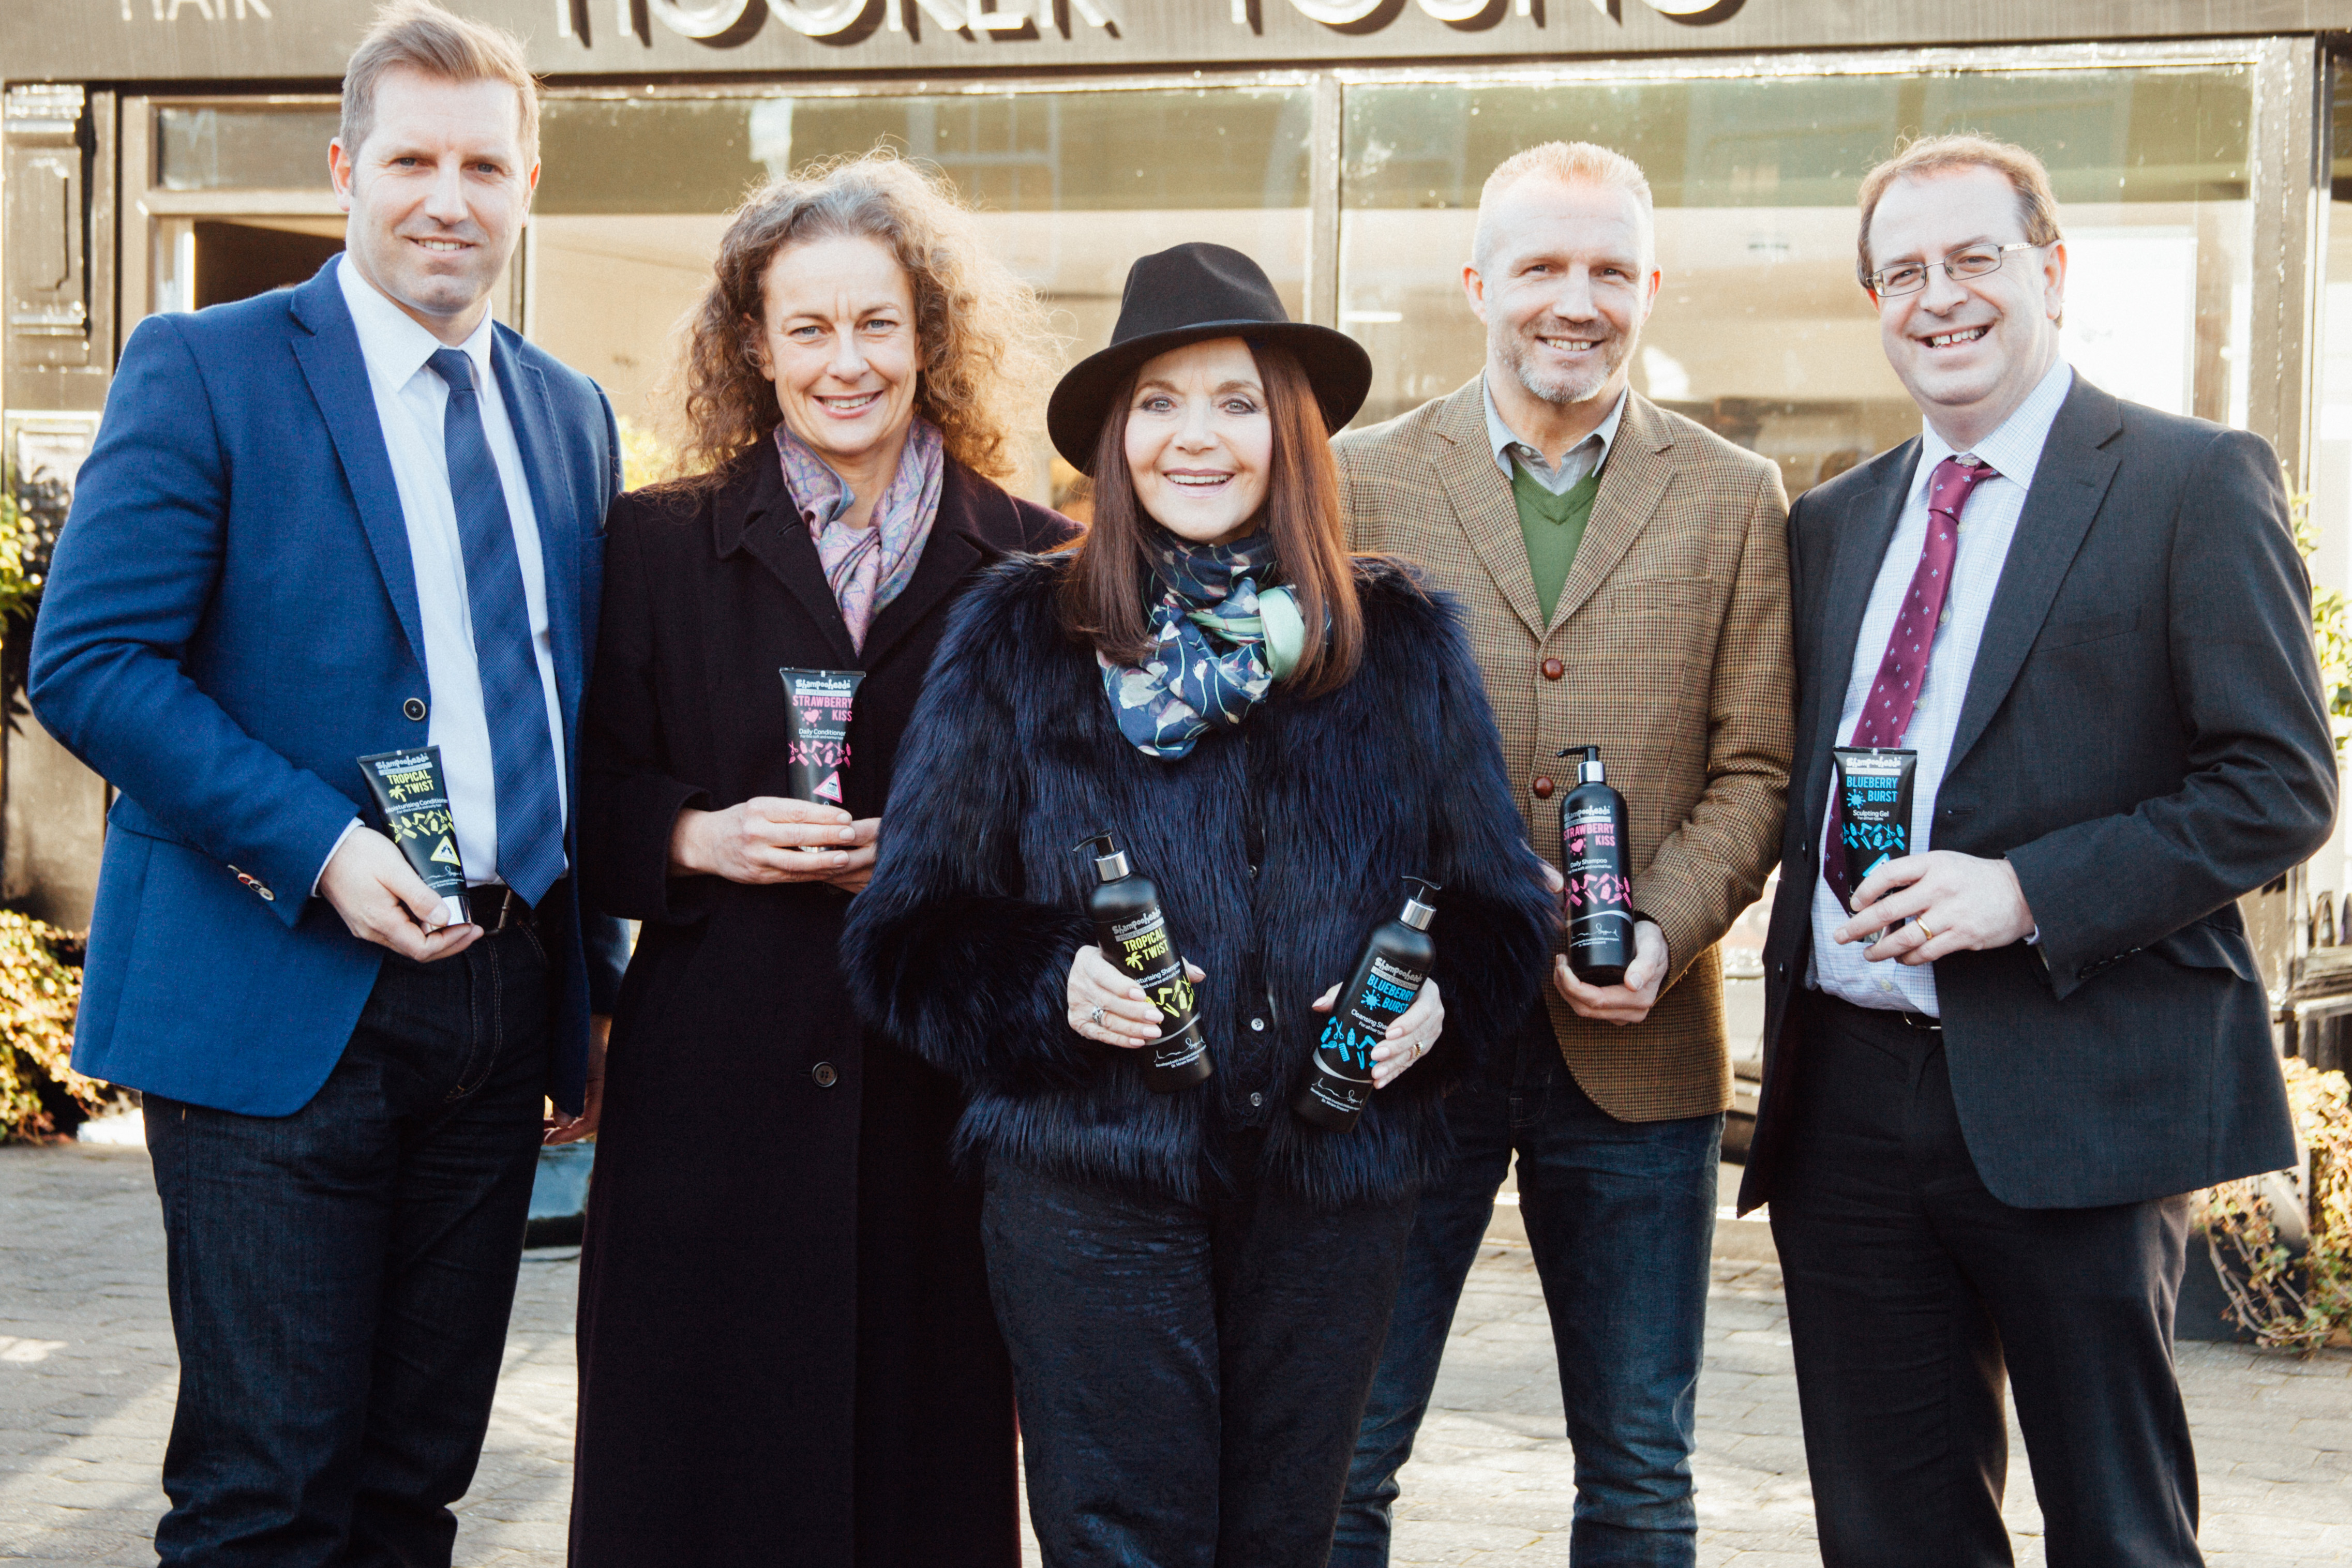 (from left) Geoff Bell of Shampooheads, Jane Siddle of NEL, Dr Miriam Stoppard, Andy Mercer of Shampooheads and Geoff Little of Bell Anderson Chartered Accountants.